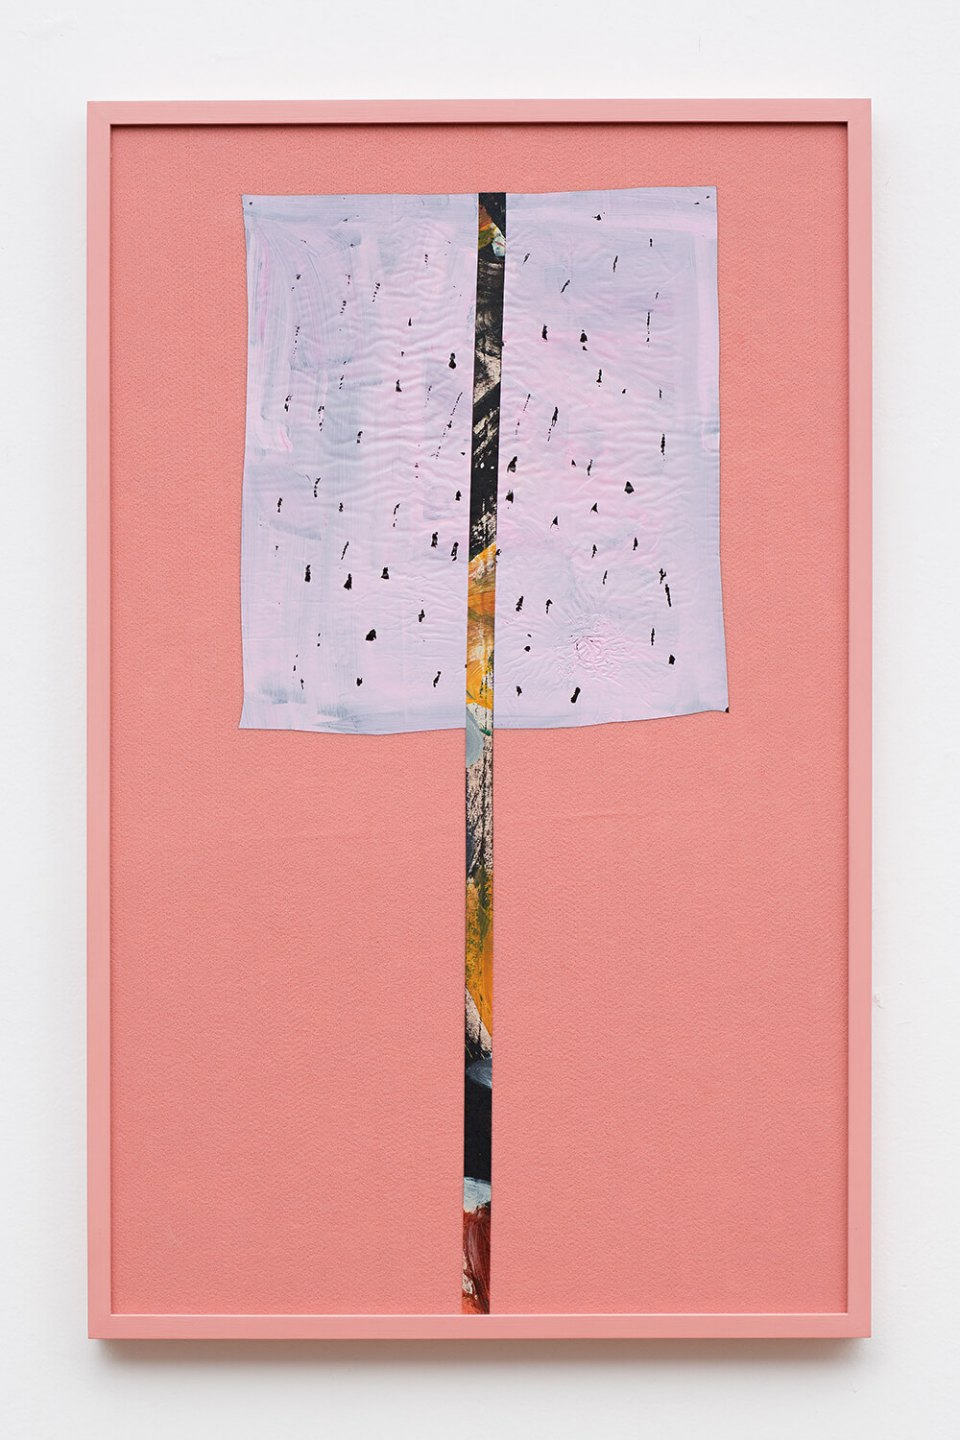 Adriano Costa, <em>Balloon</em>, 2013, felt and acrylic on paper and plastic, 82 × 52 cm - Mendes Wood DM